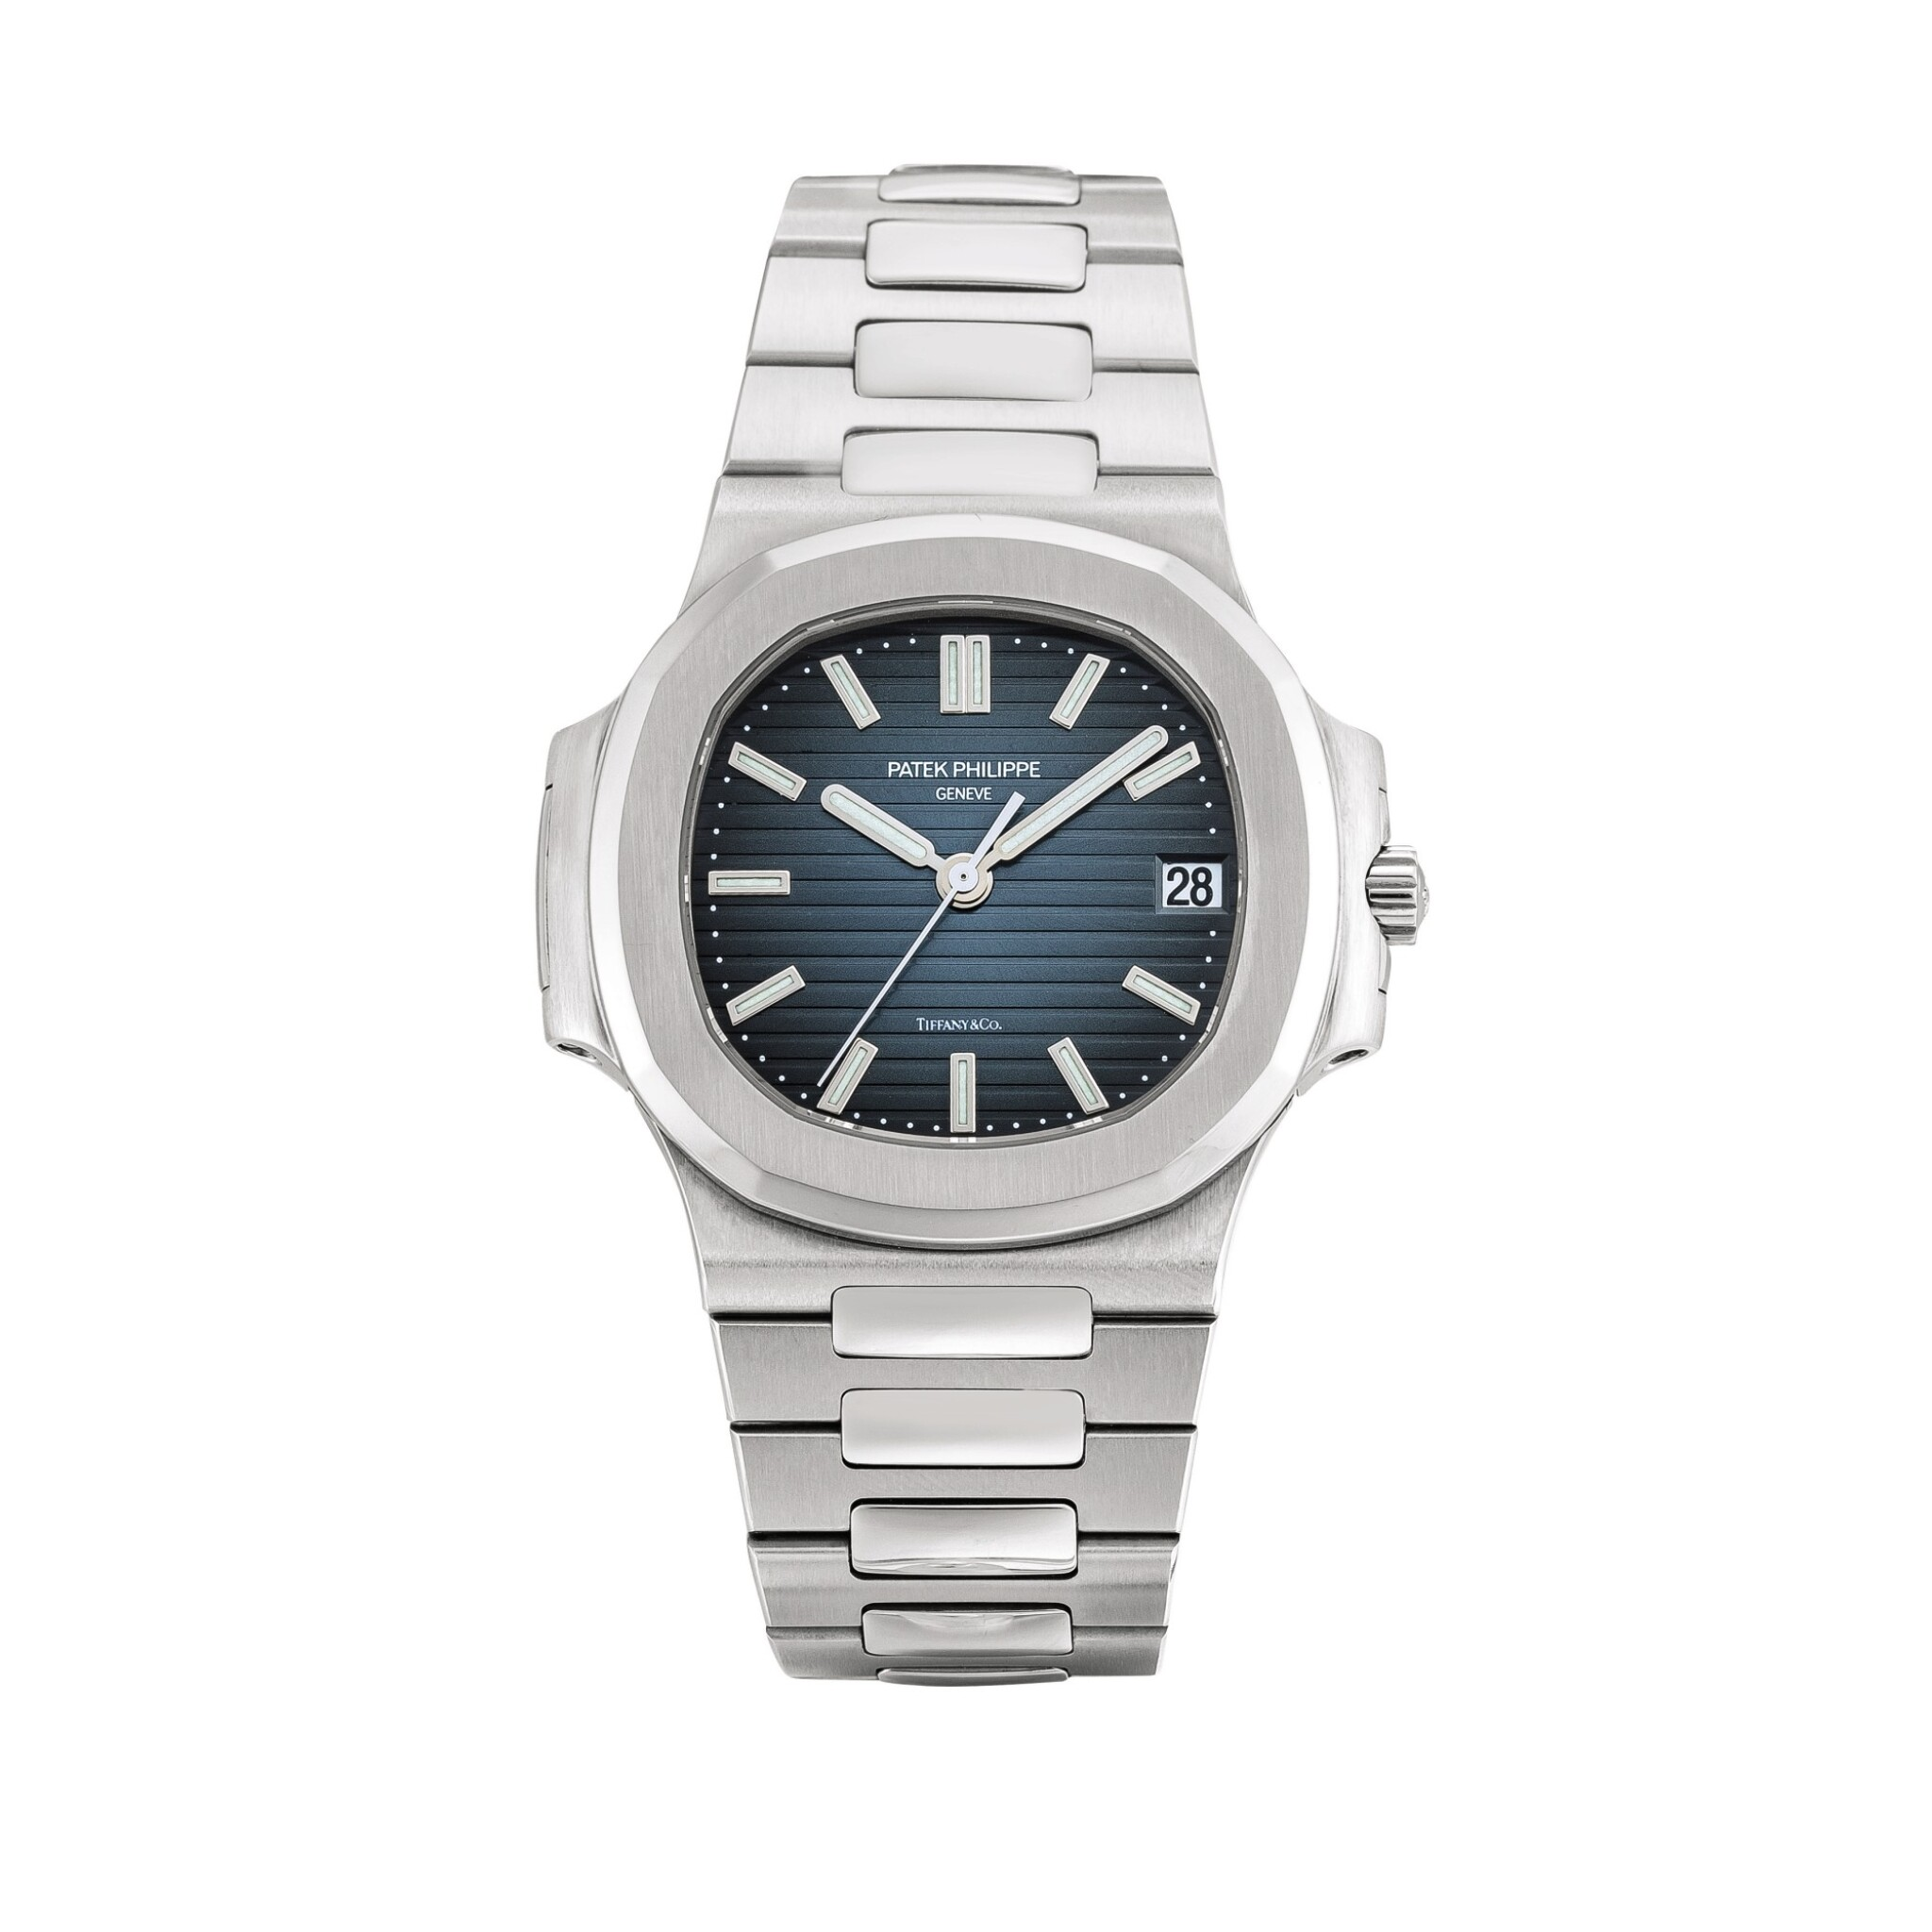 View full screen - View 1 of Lot 2087. Patek Philippe   Nautilus, Reference 5800, A stainless steel bracelet watch with date, Retailed by Tiffany & Co., Circa 2008   百達翡麗   Nautilus 型號5800   精鋼鏈帶腕錶,備日期顯示,由 Tiffany & Co. 發行,約2008年製.